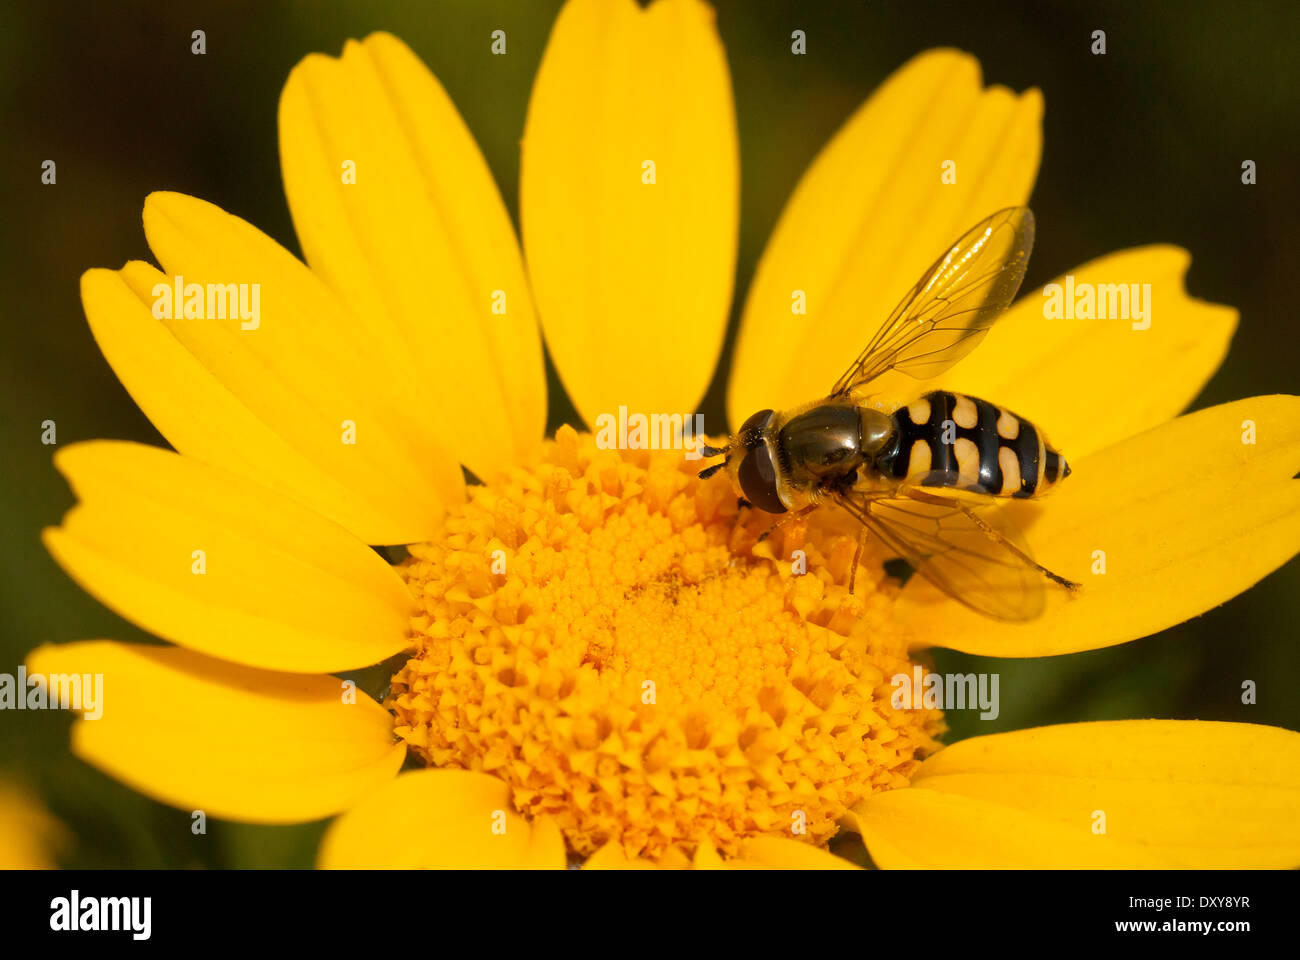 Hover fly on  yellow flower - Stock Image